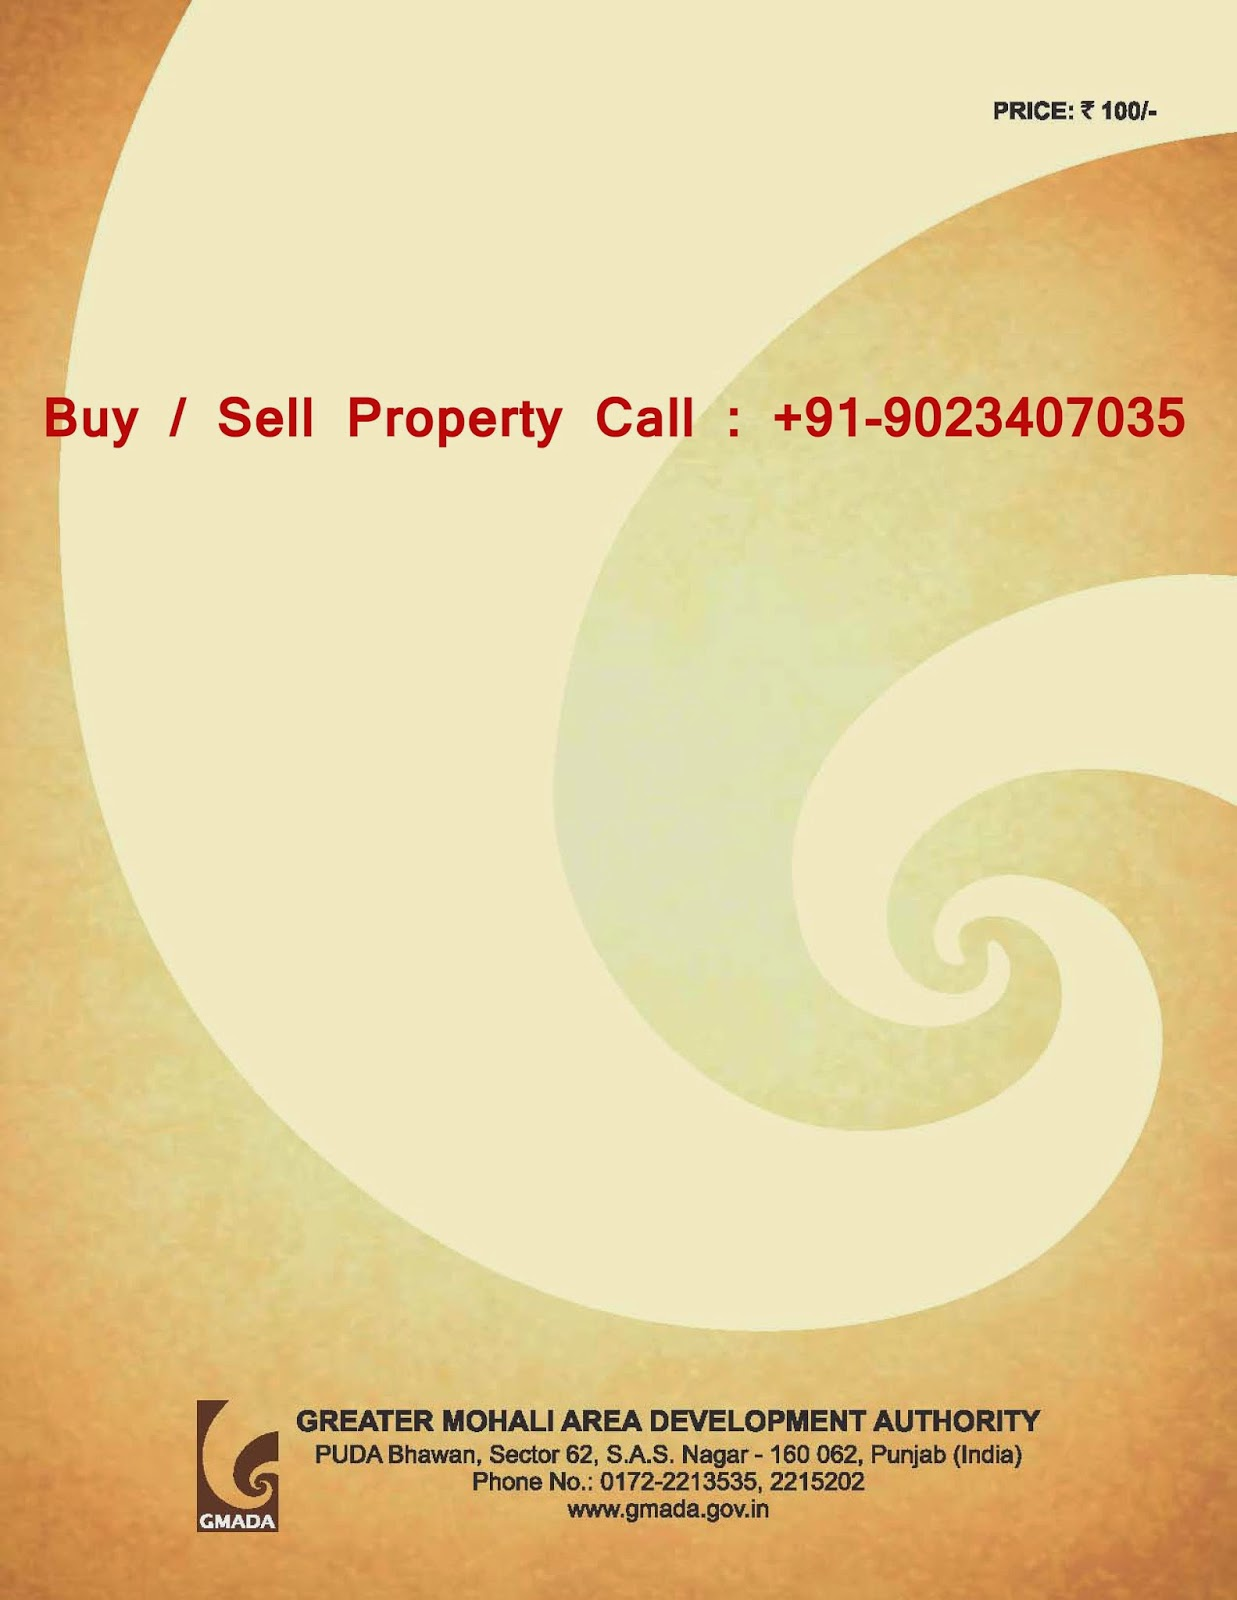 GMADA Ecocity Phase 2 Mullanpur New-Chandigarh Broucher Plots, Allotement and Land-Pooling Property Deals.